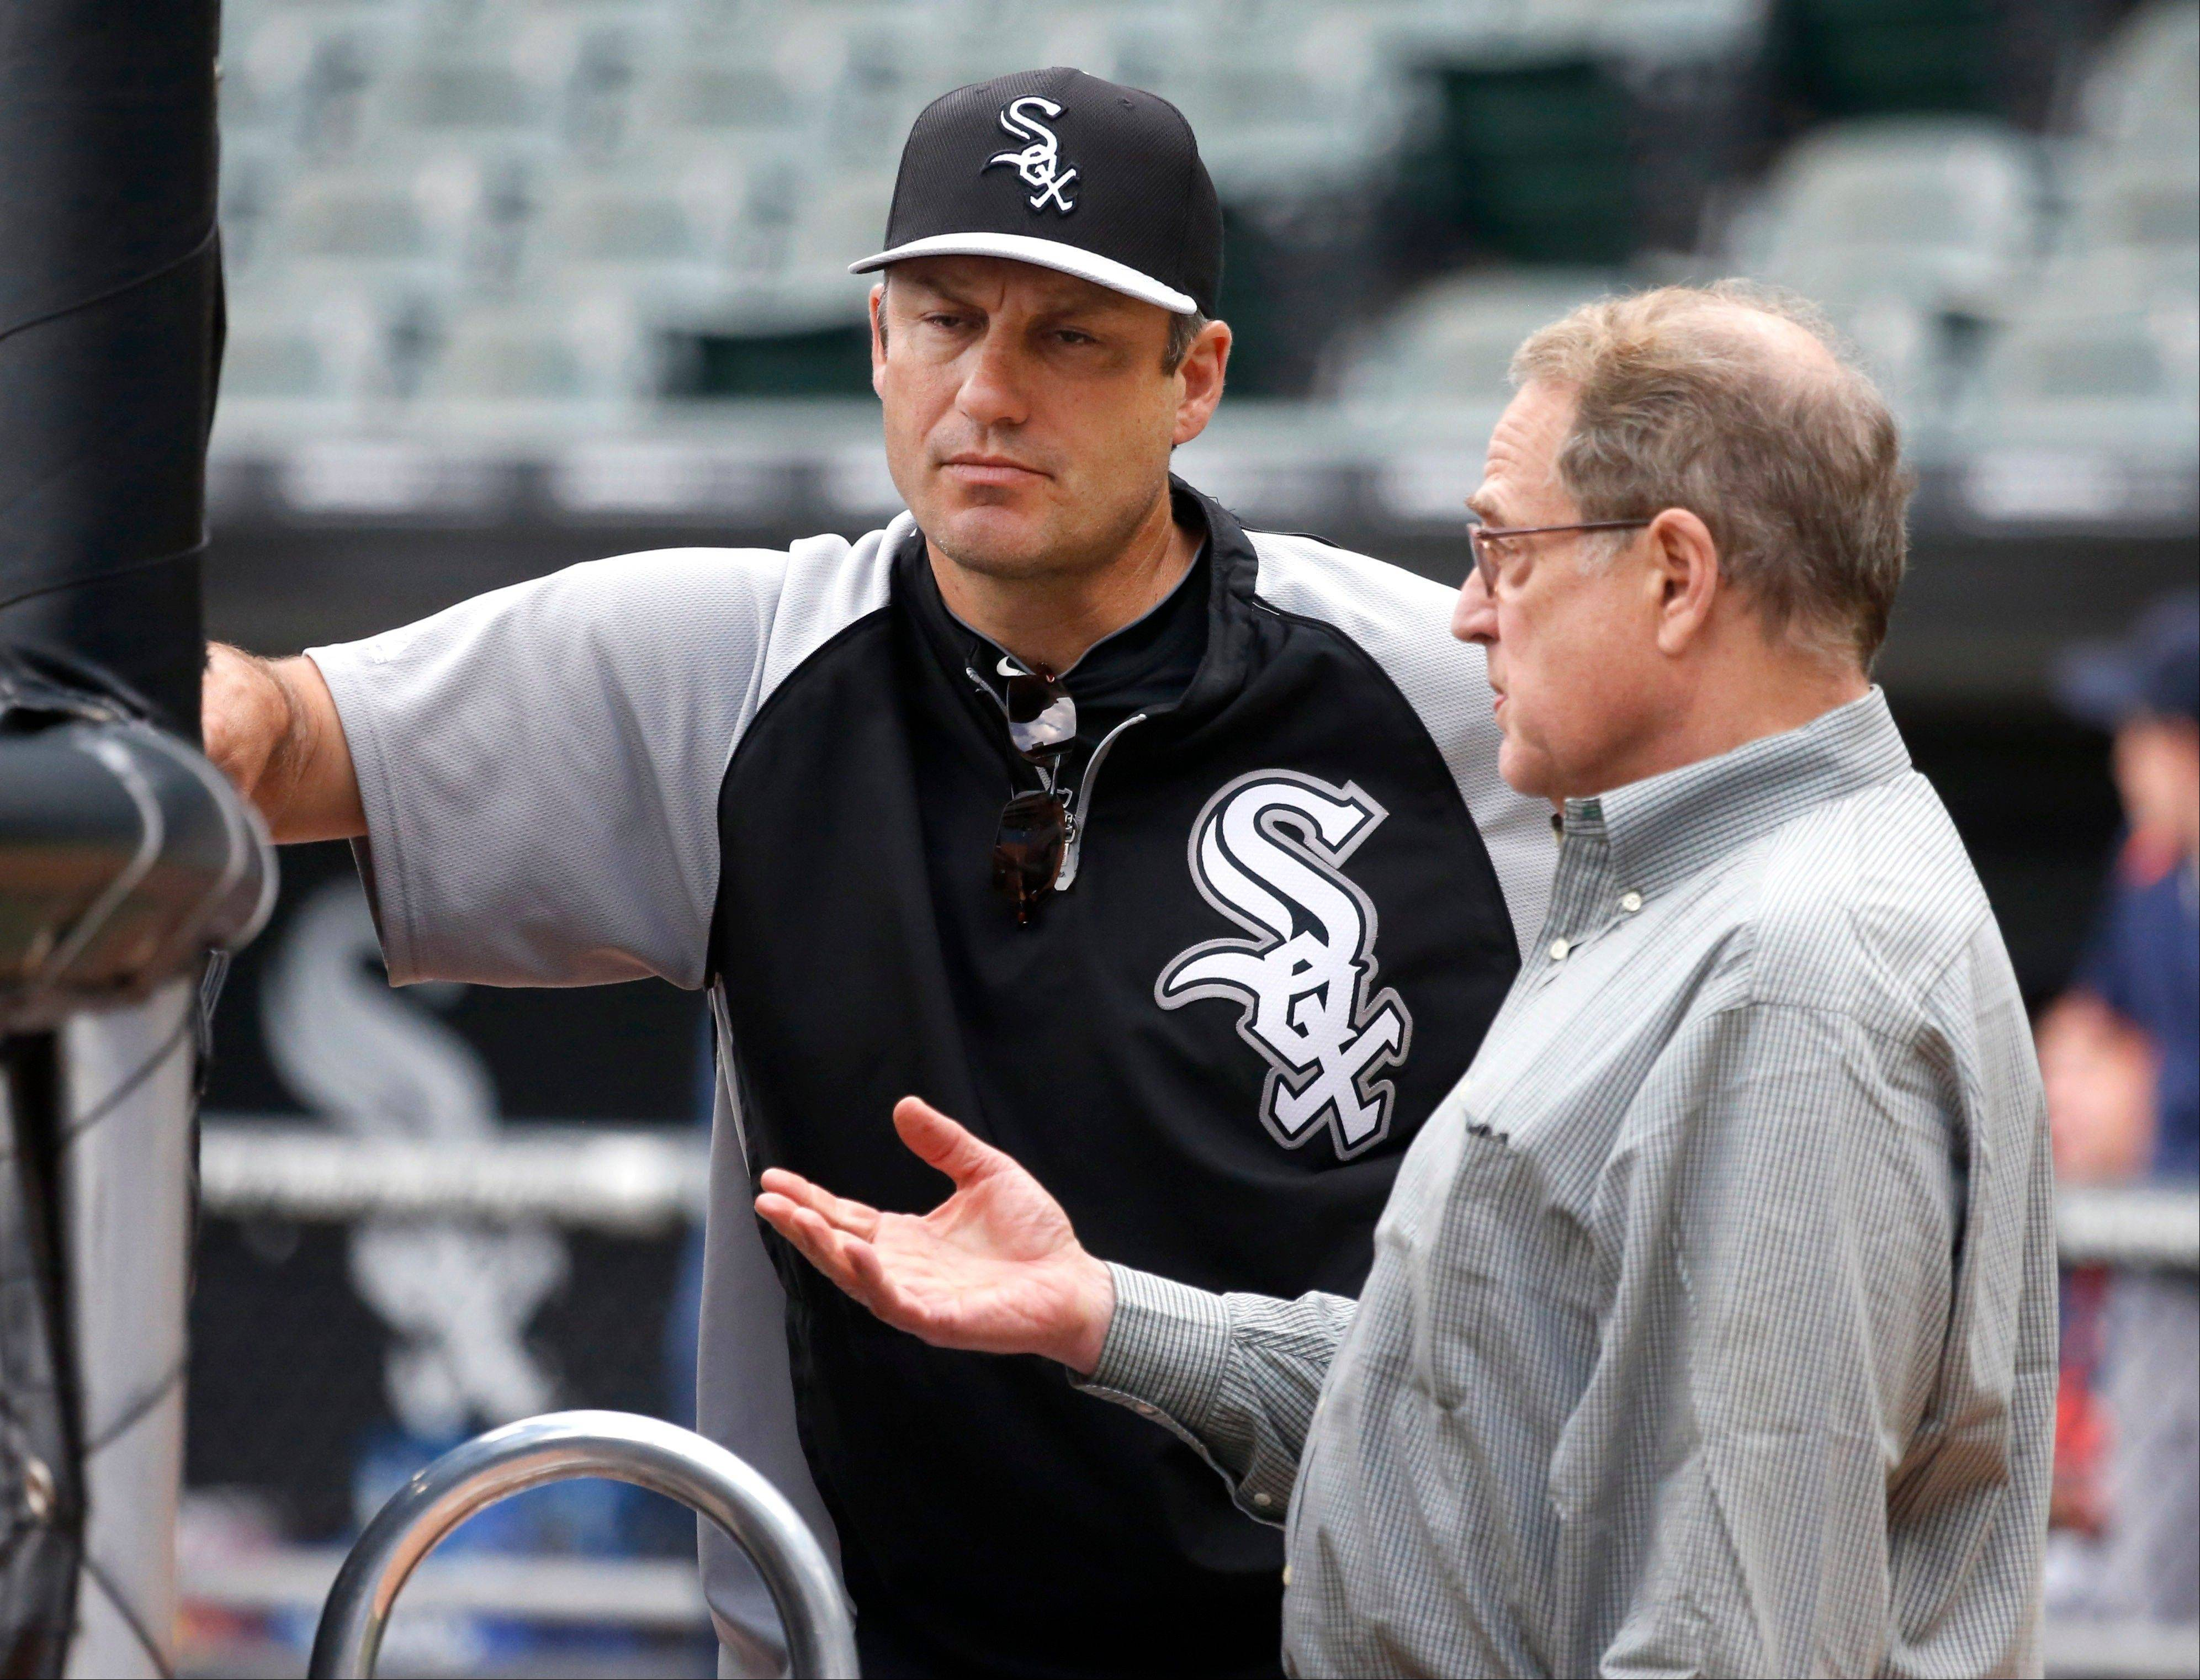 White Sox manager Robin Ventura listens to club chairman Jerry Reinsdorf during batting practice before Tuesday�s game against the Detroit Tigers.